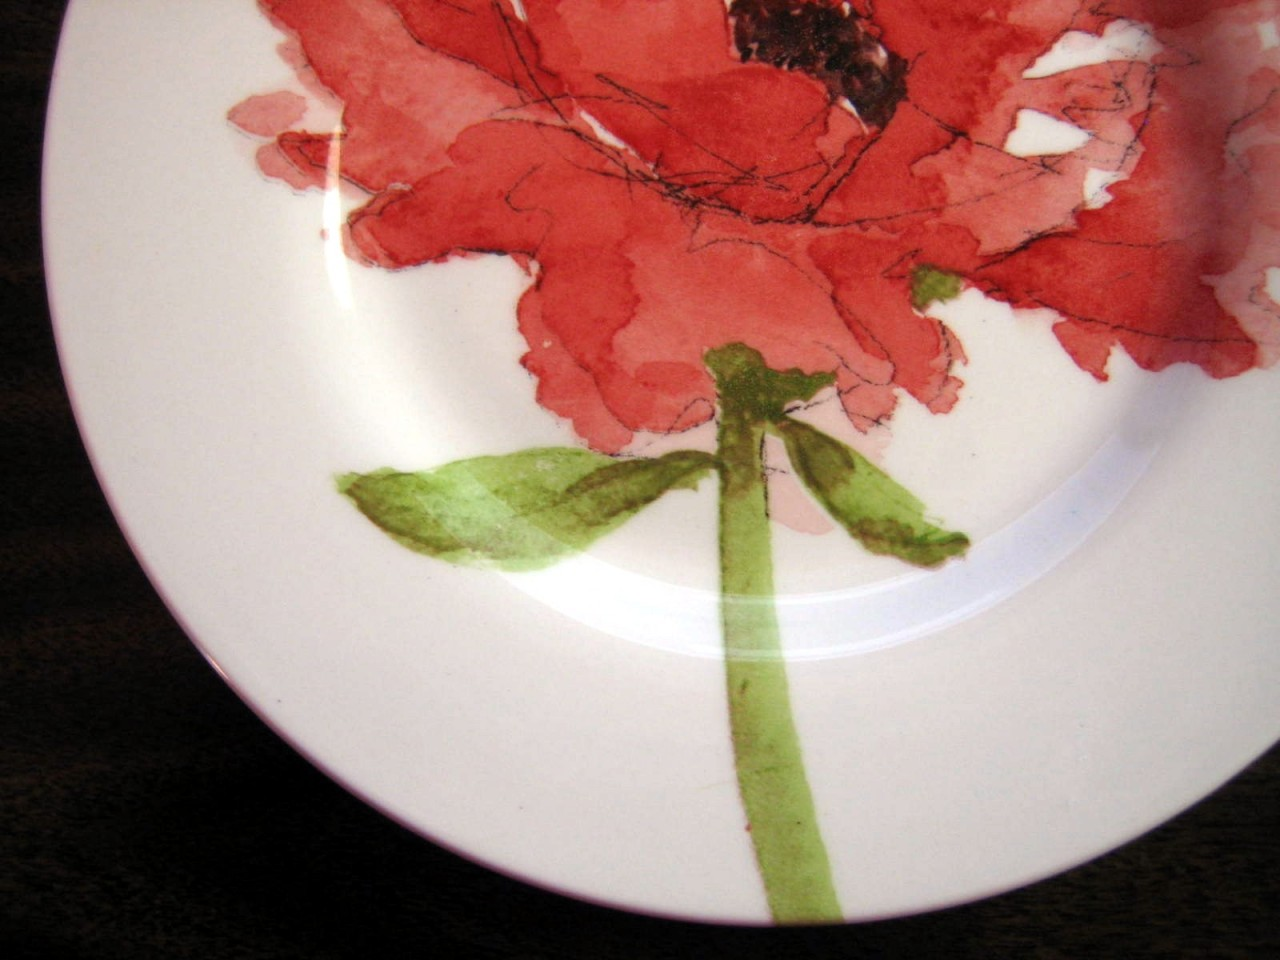 Bold Contemporary Urban Chic Soft Pink Red Flower White Plate Edge www.DecorativeDishes.net